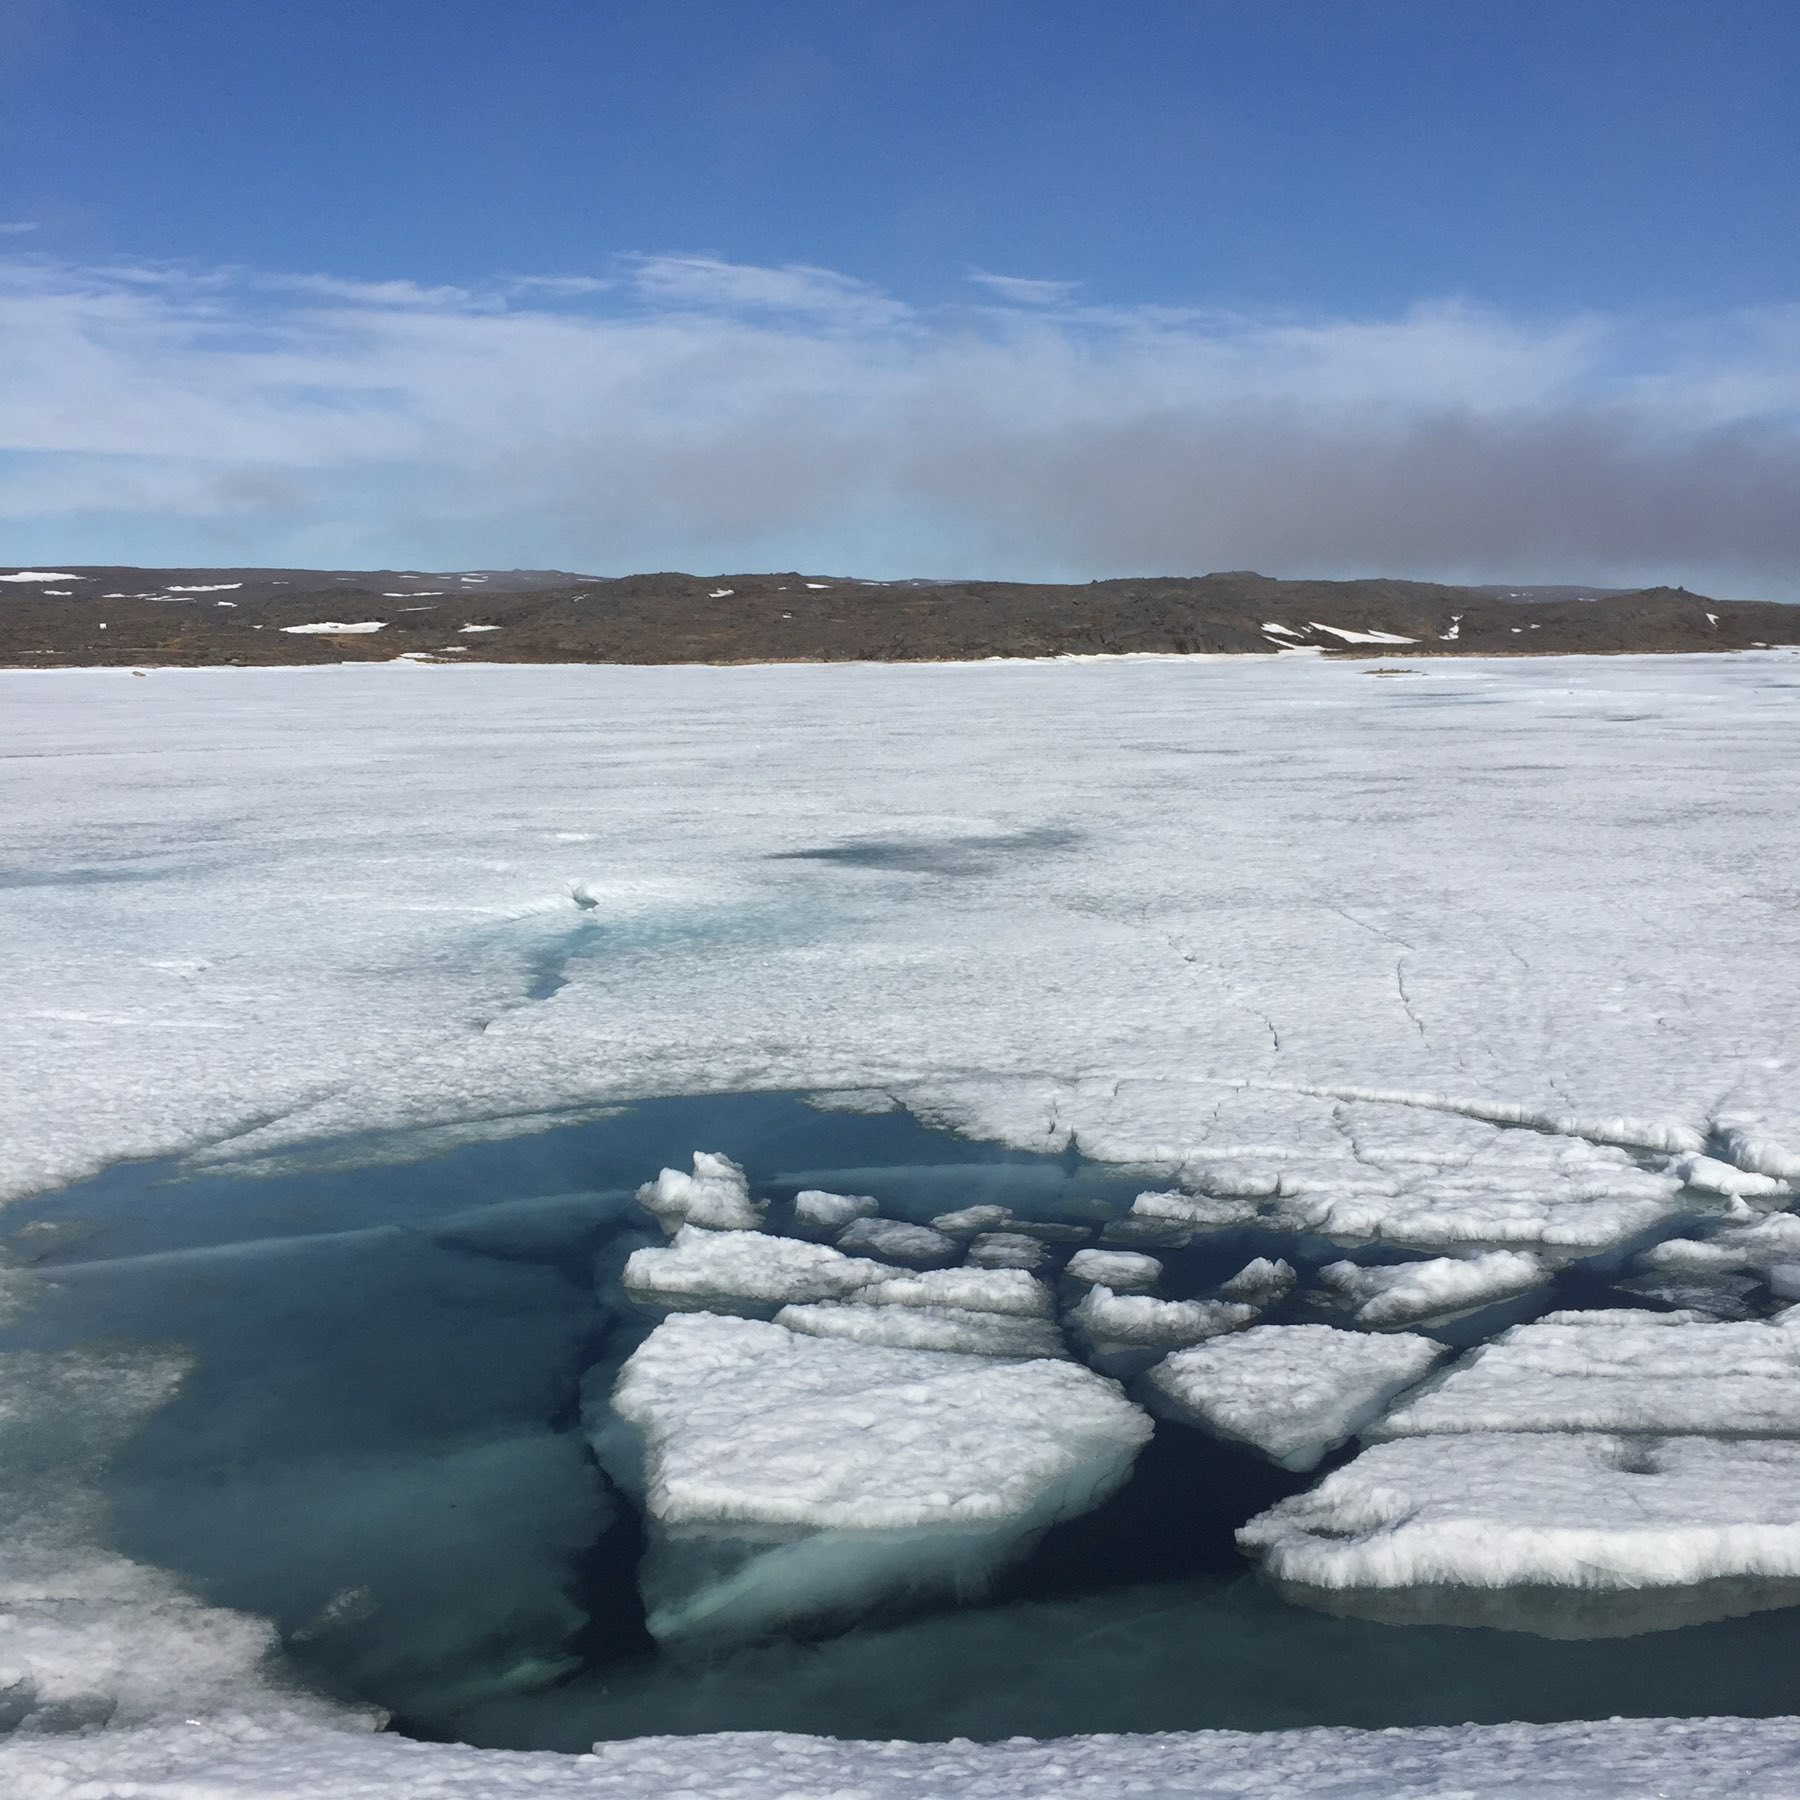 melting lake ice, June 2019